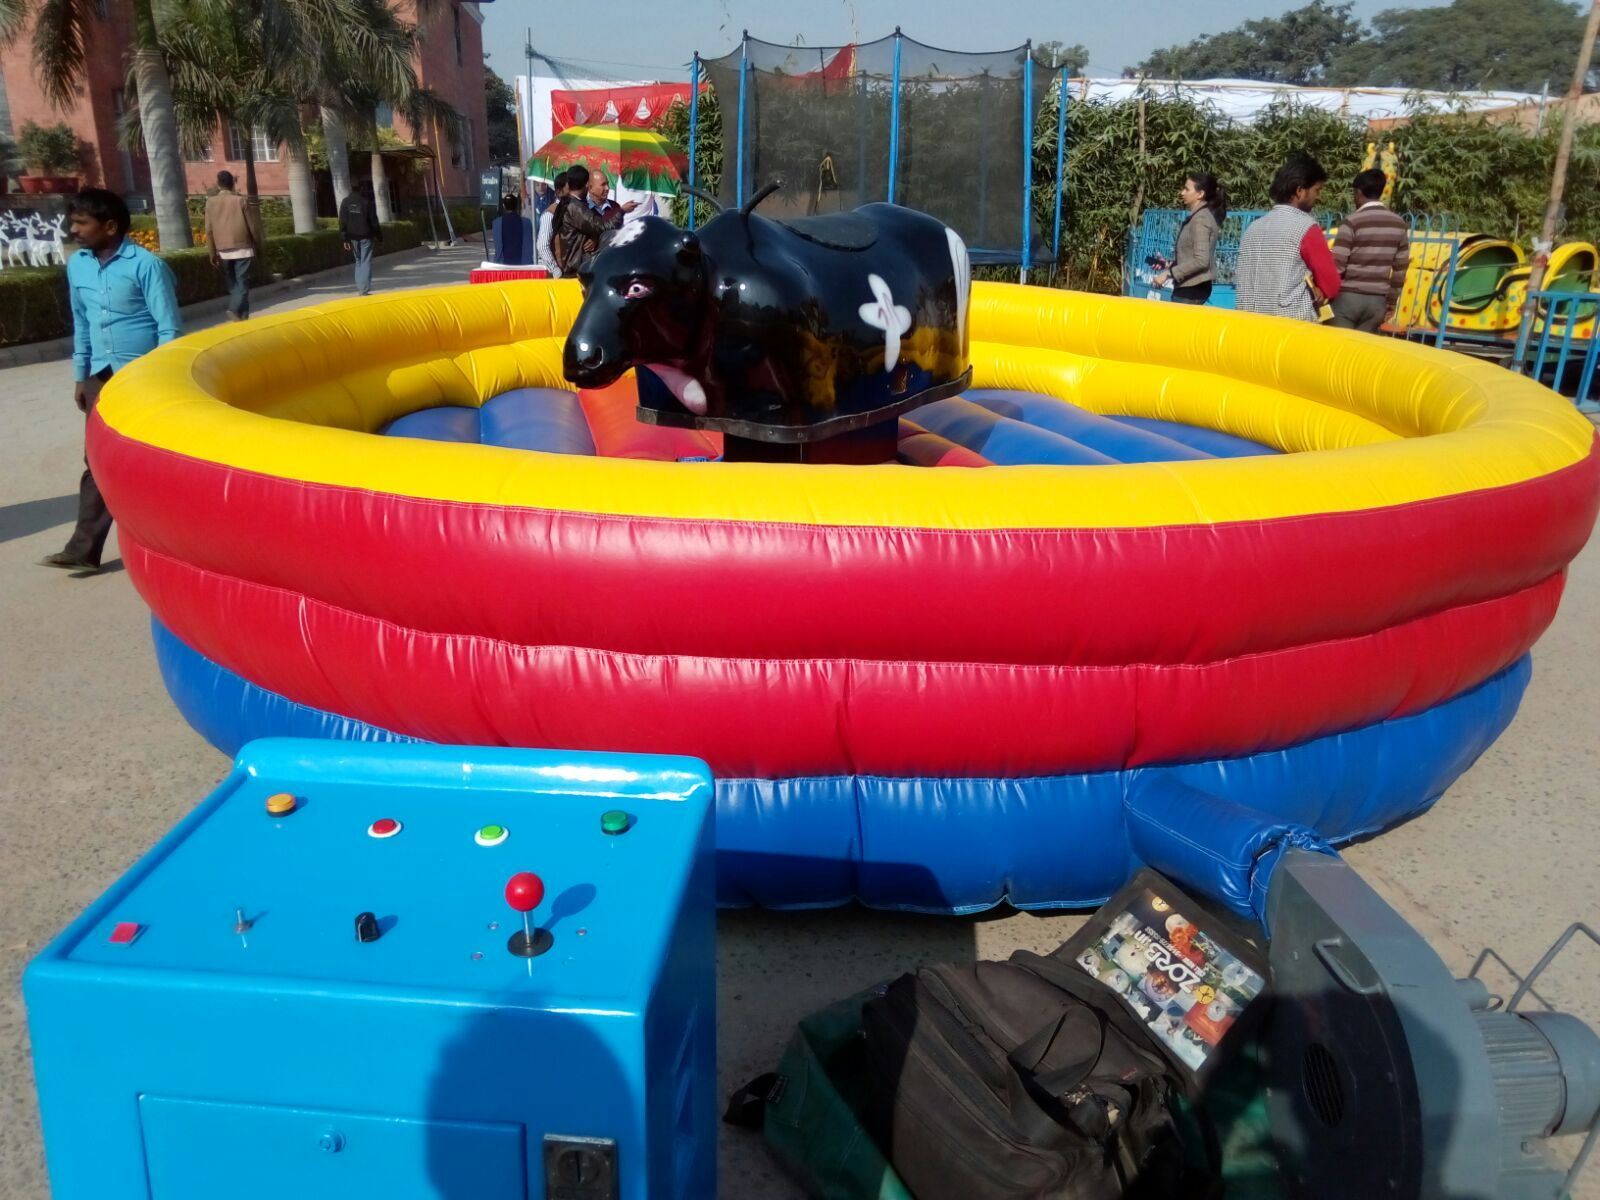 Book the macanical bull ride for your nest eventbull ride